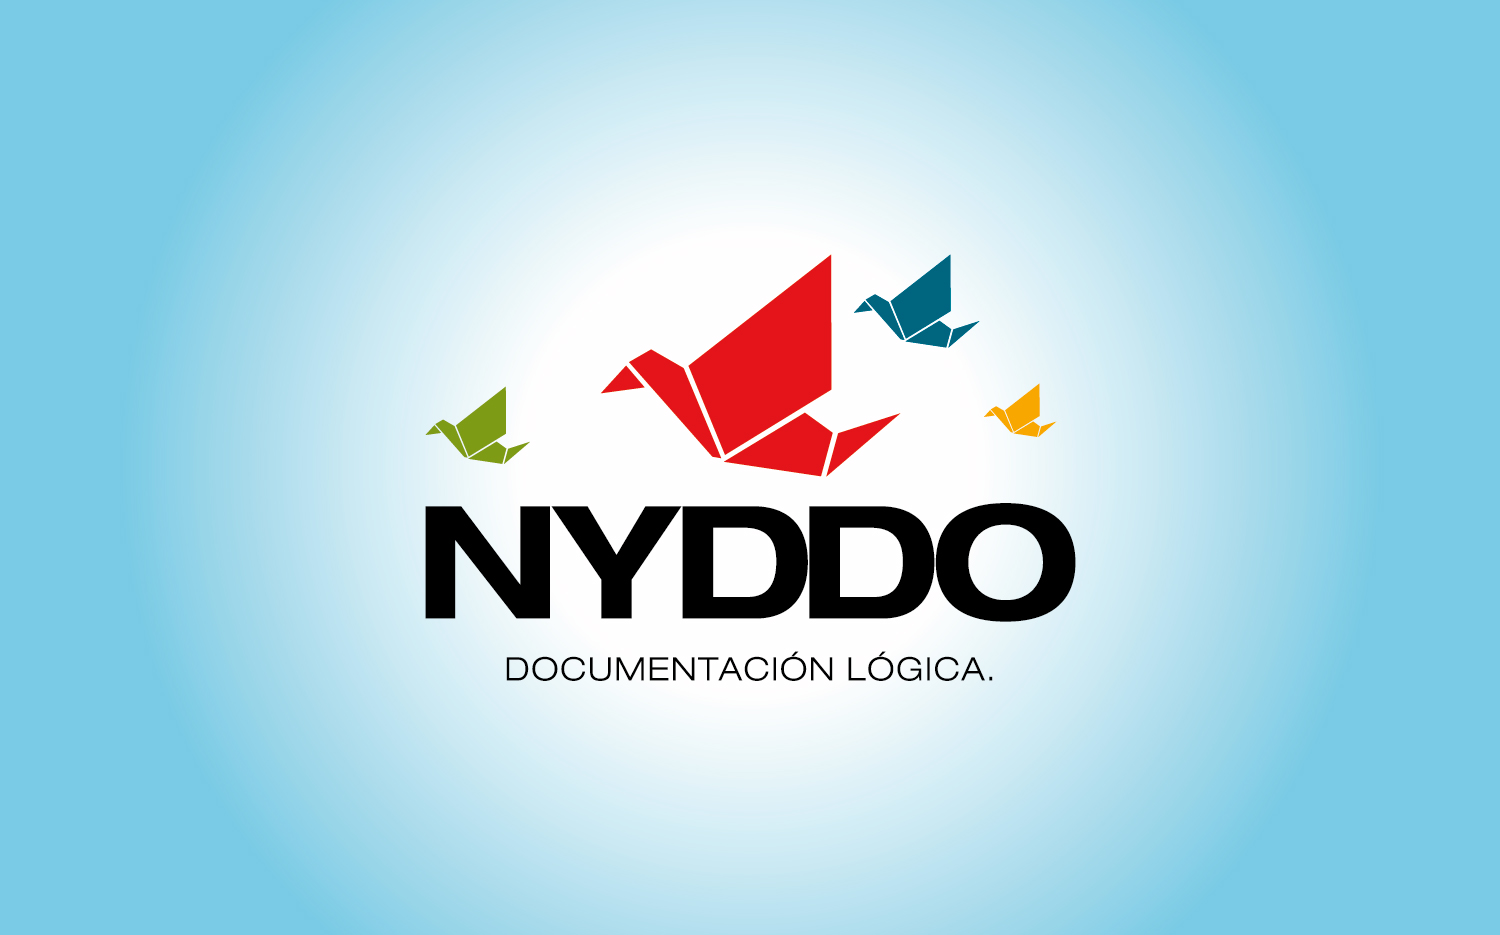 Identidad corporativa y naming de Nyddo